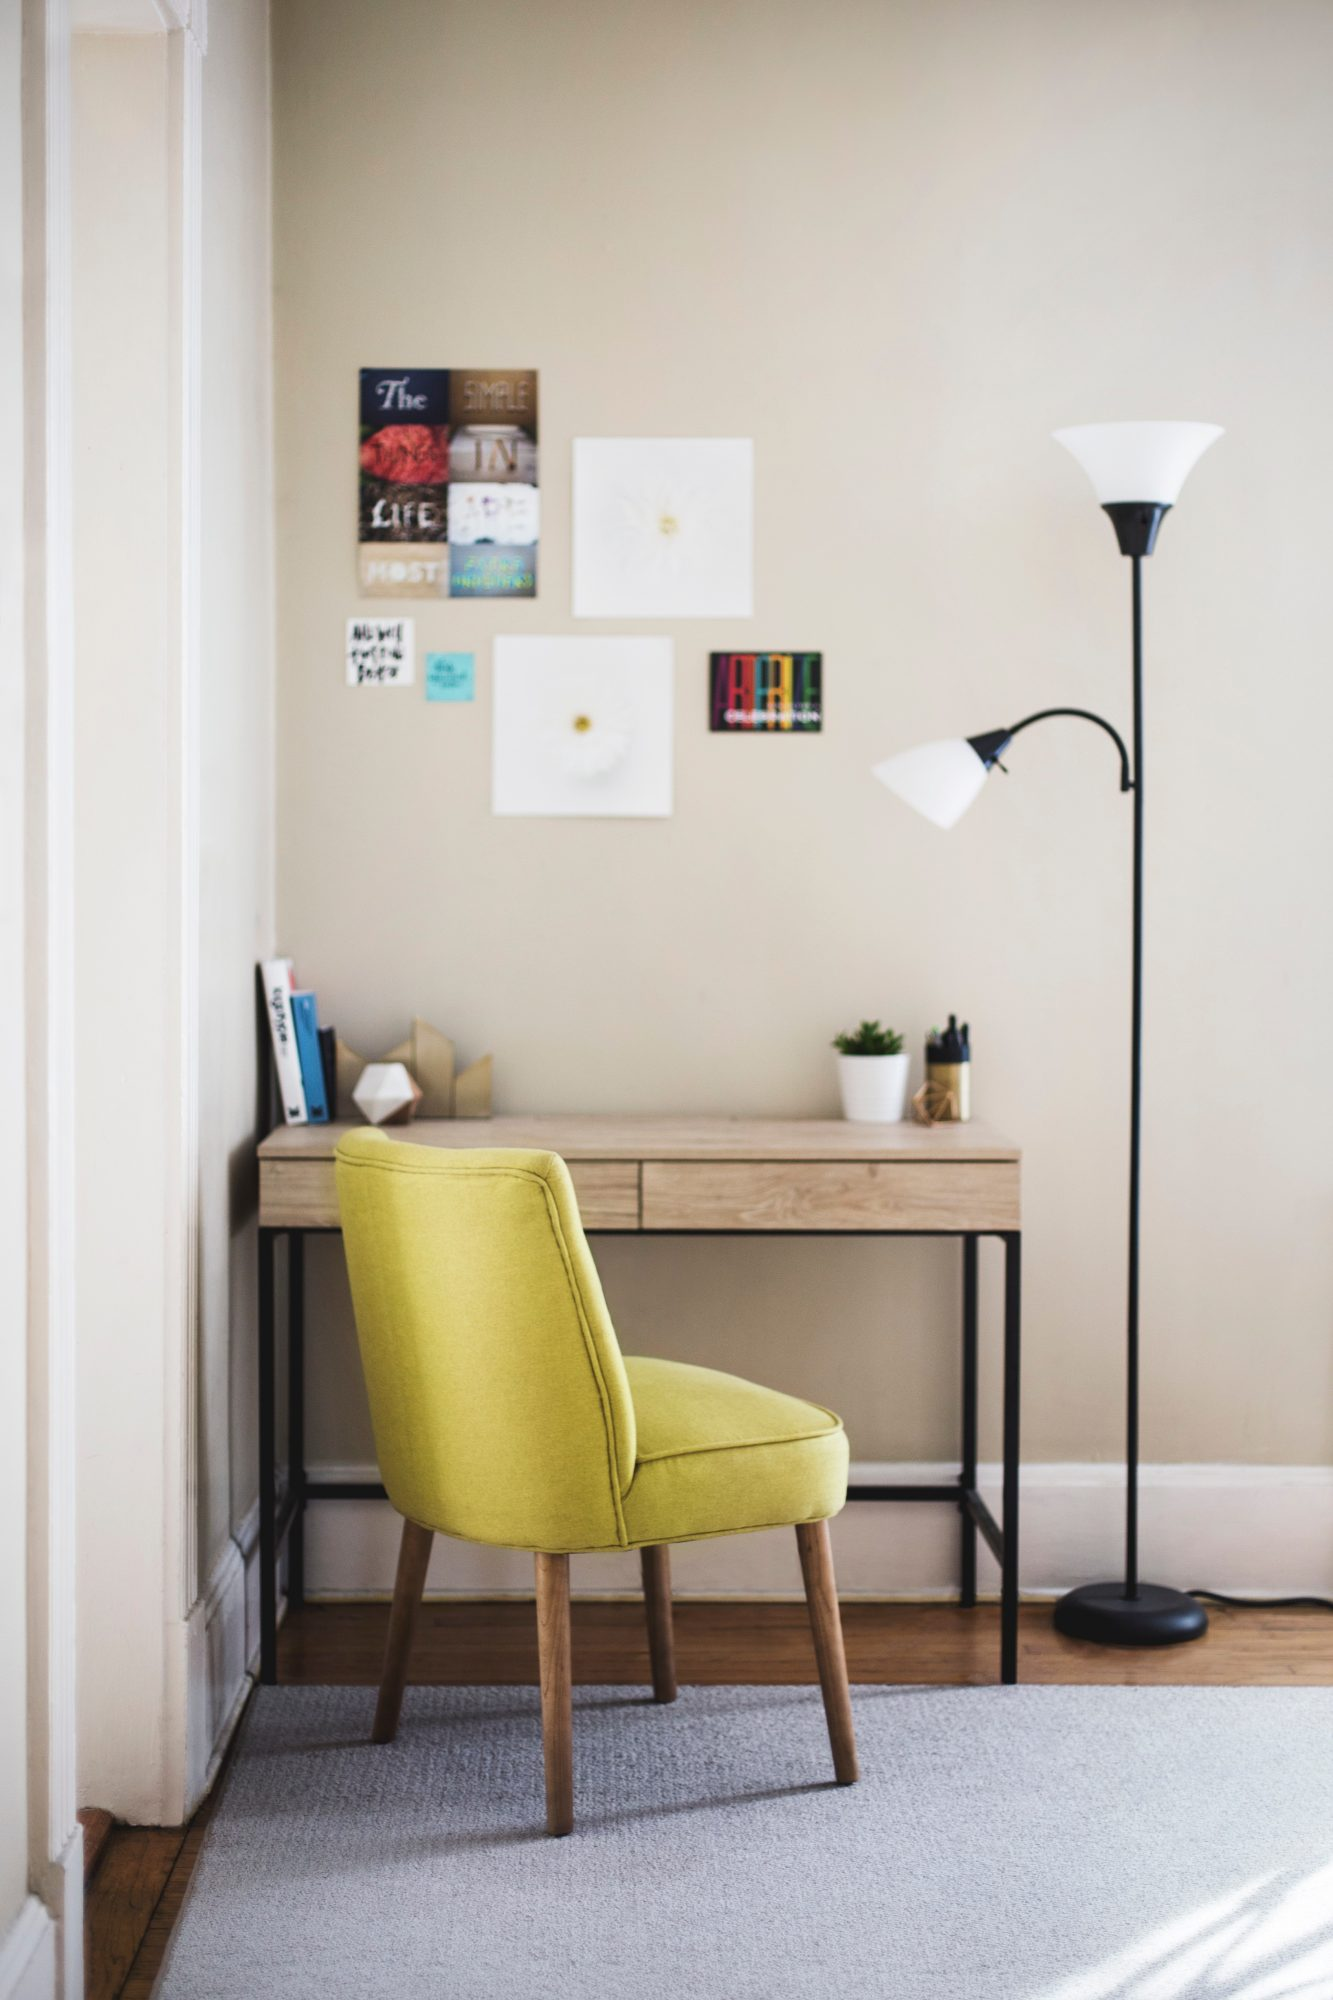 Home Office Decor For Private Impression: 17 Surprising Home Office Ideas